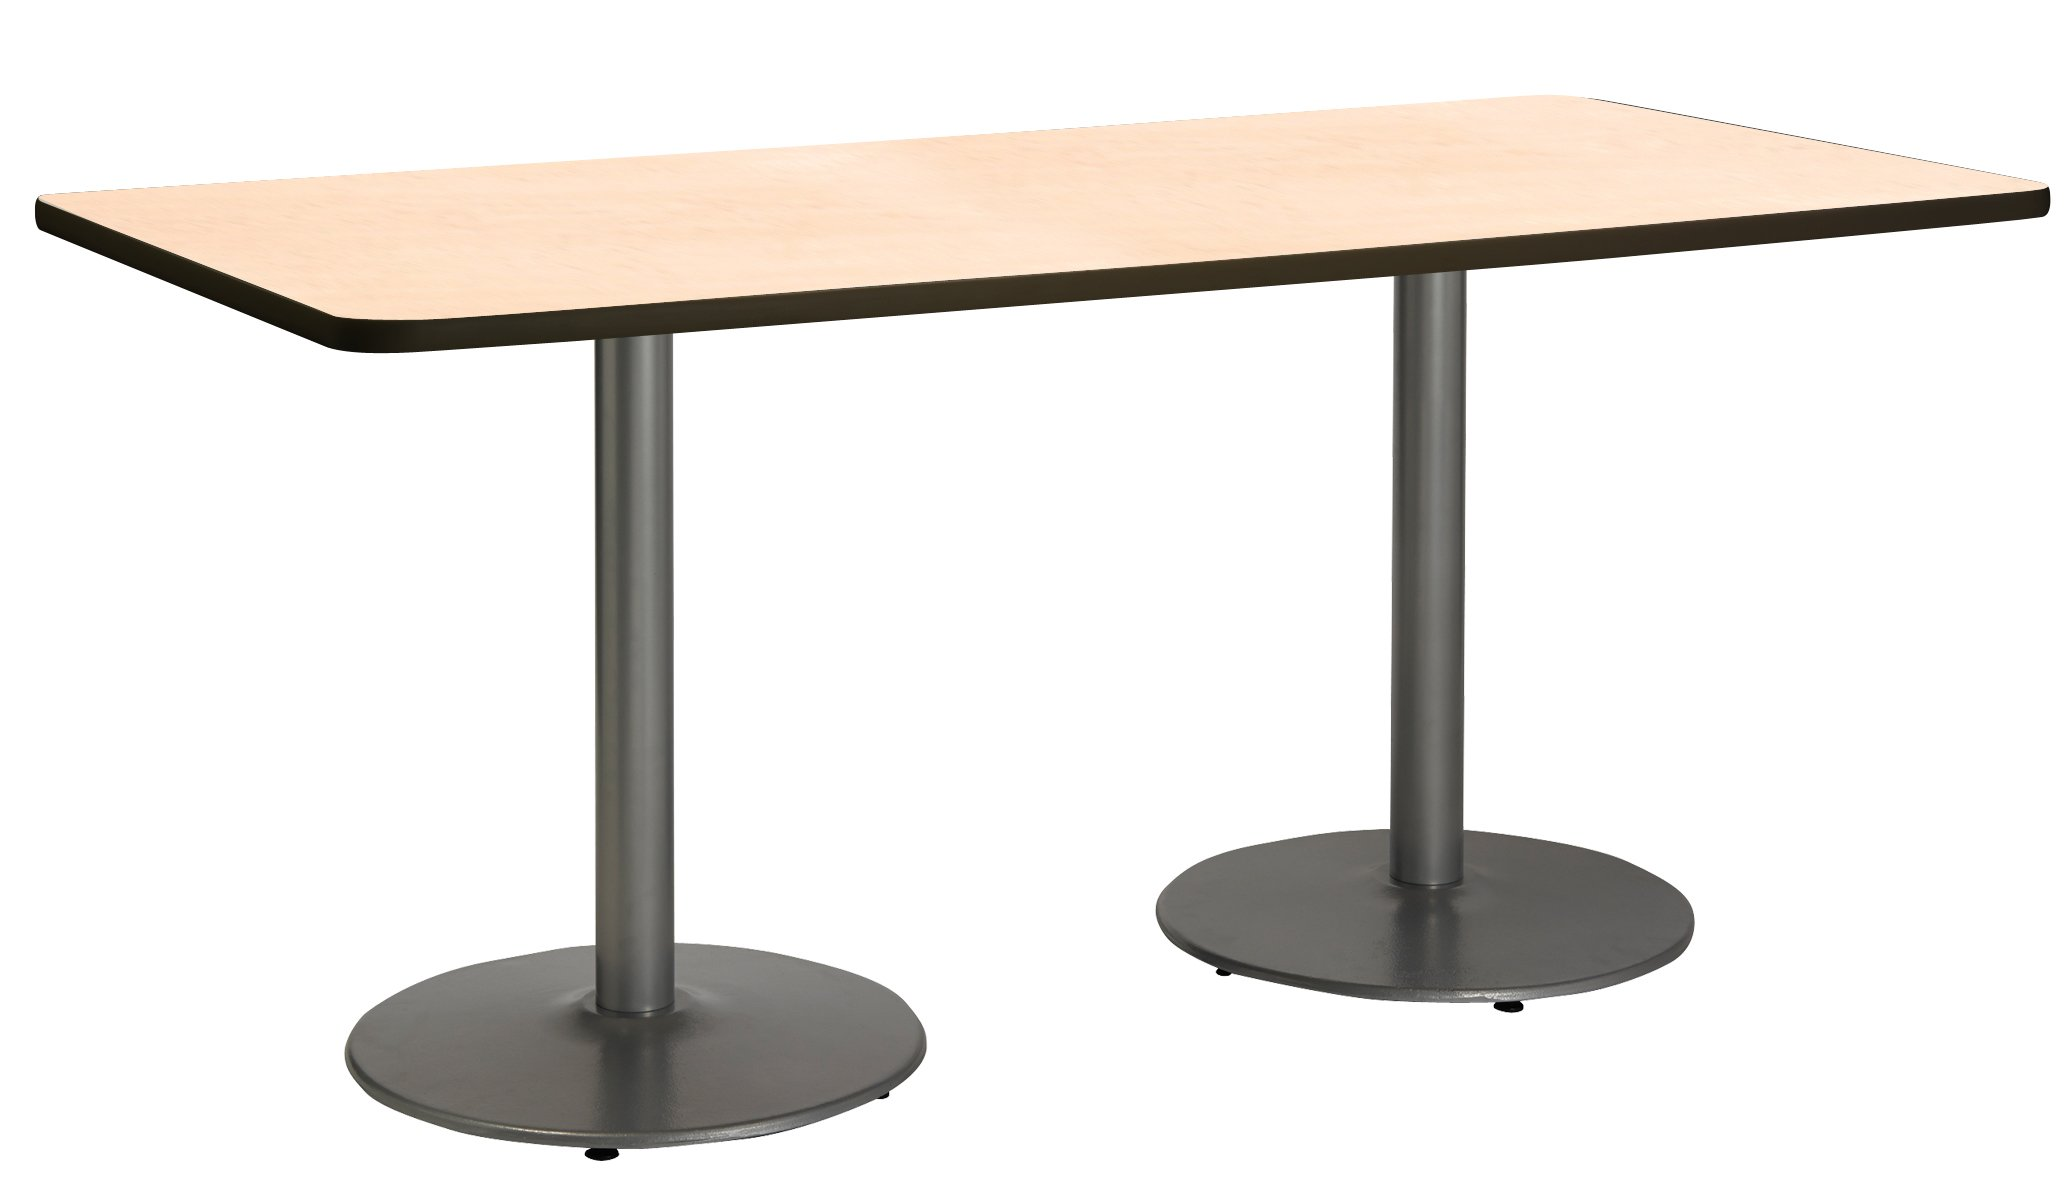 30'' x 72'' Pedestal Table with Natural Top, Round Silver Base by KFI Seating